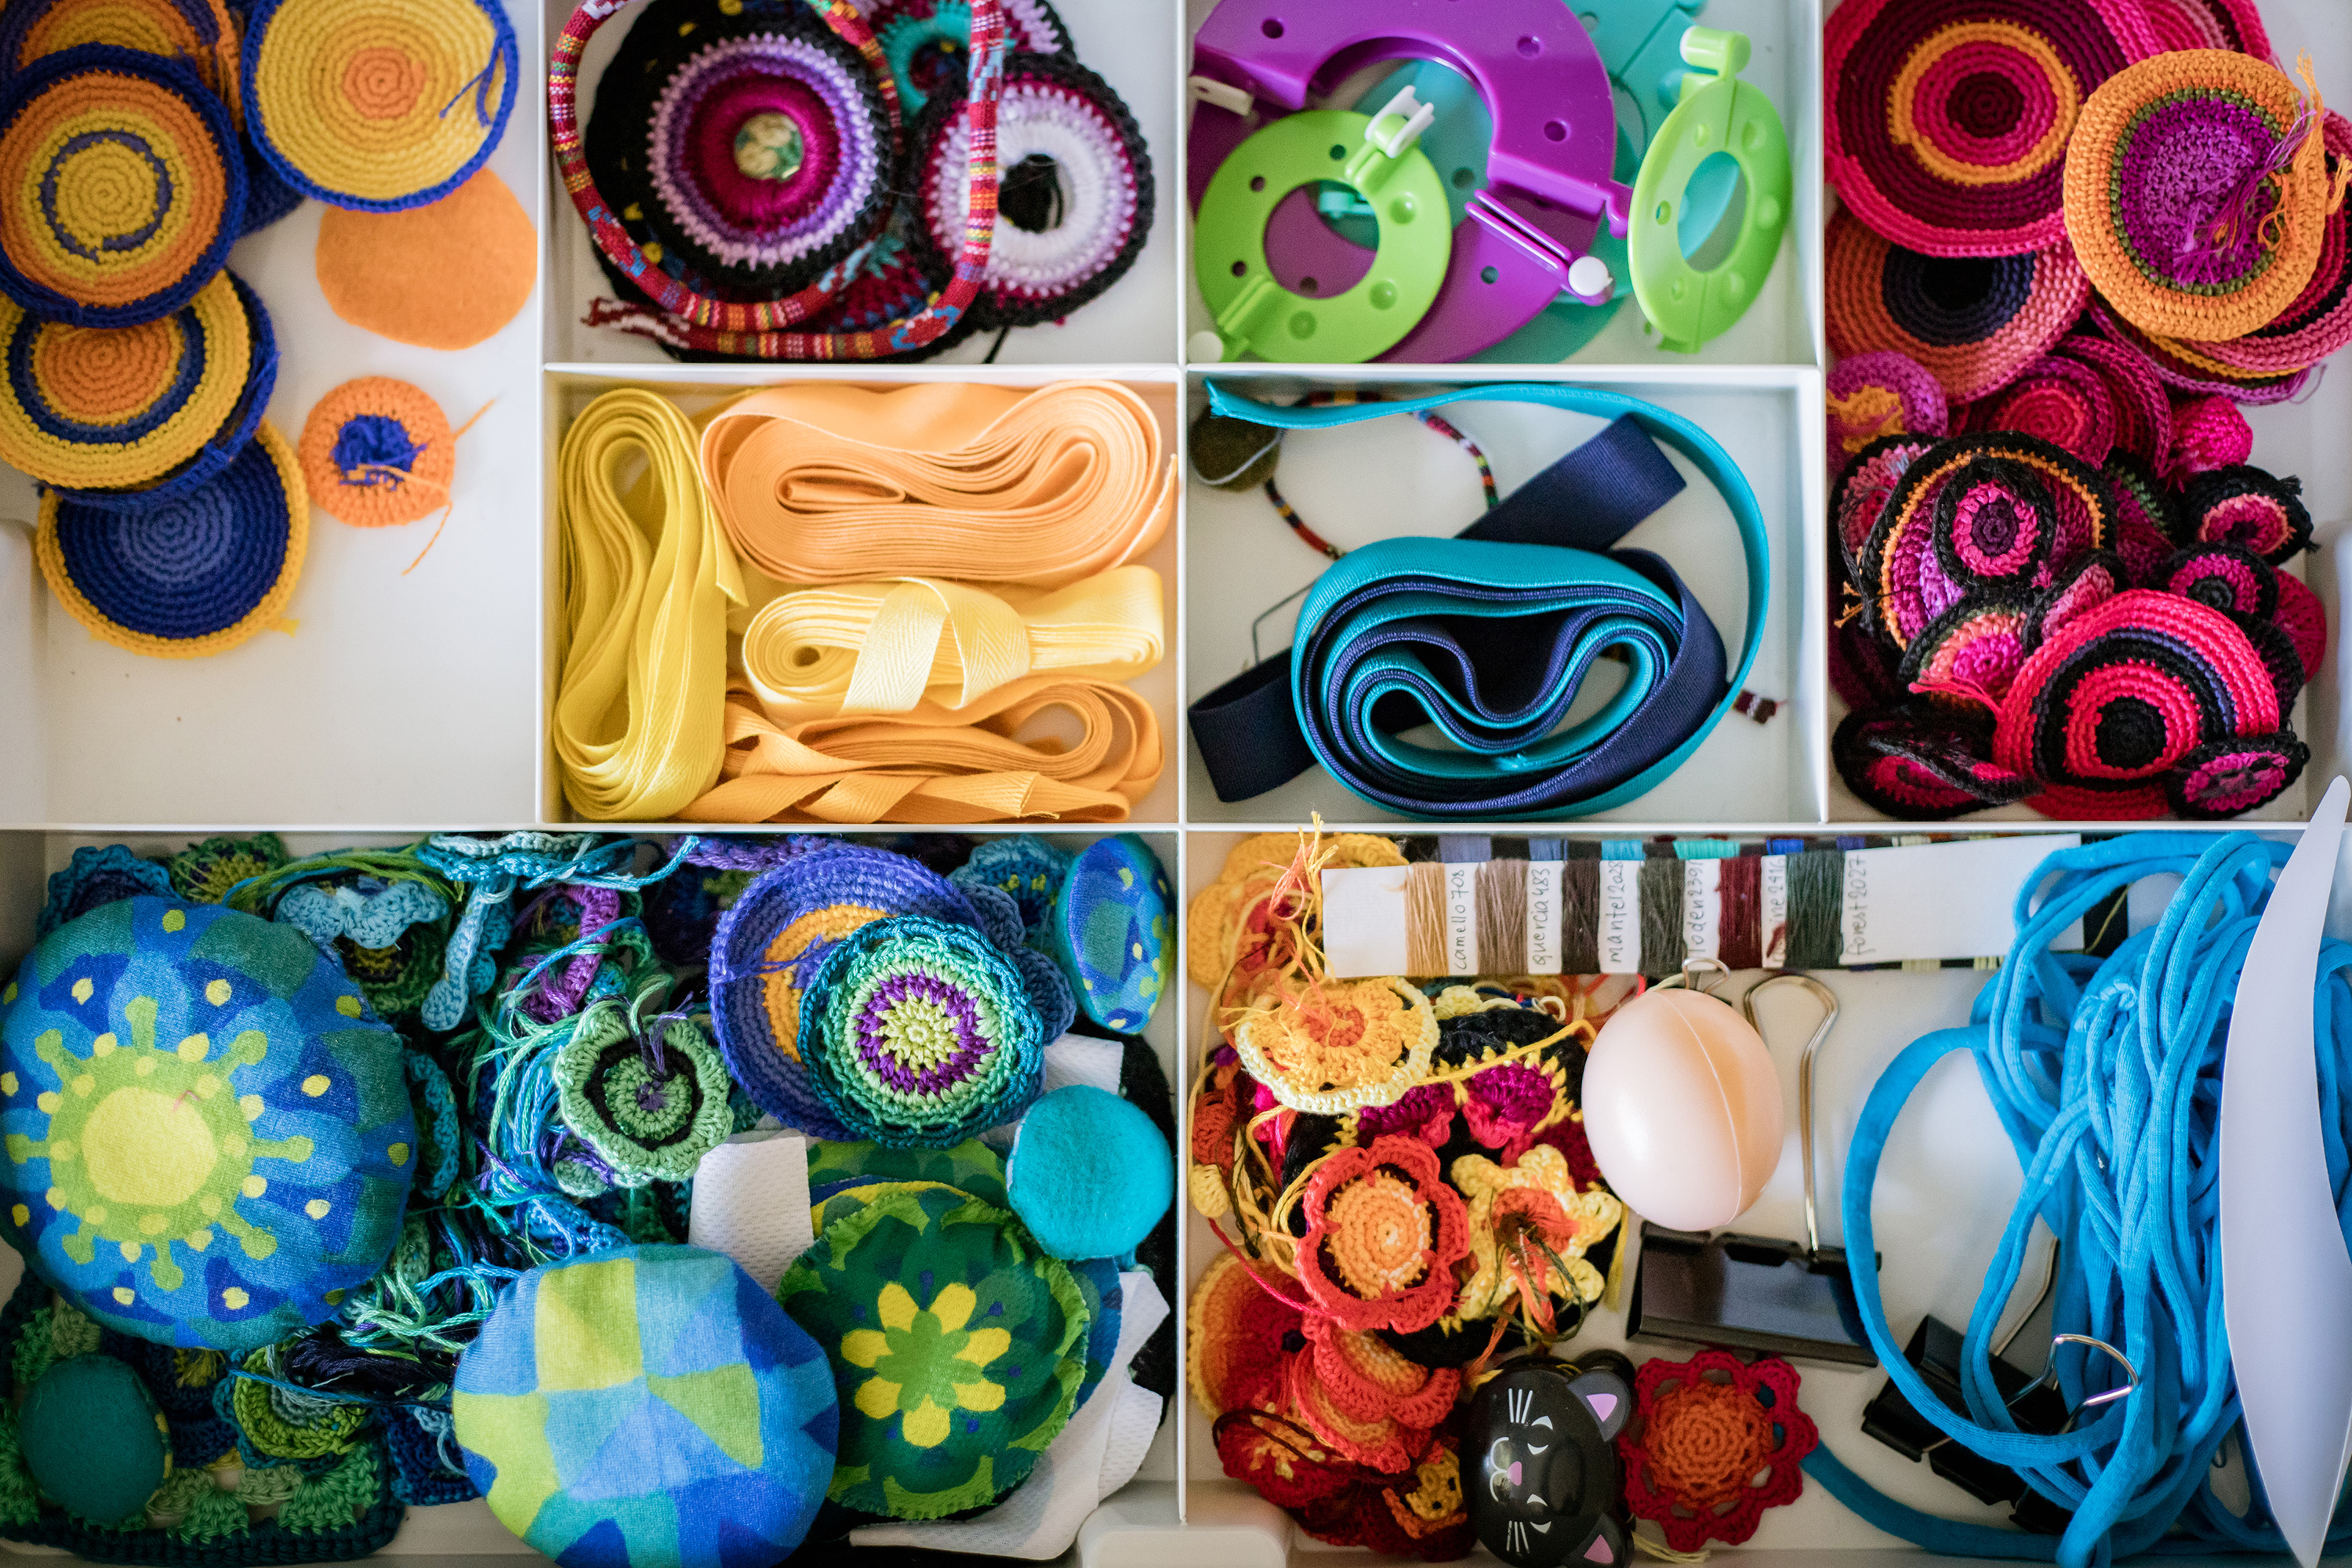 Circles knitted by Budka24, flowers for the Manu store.